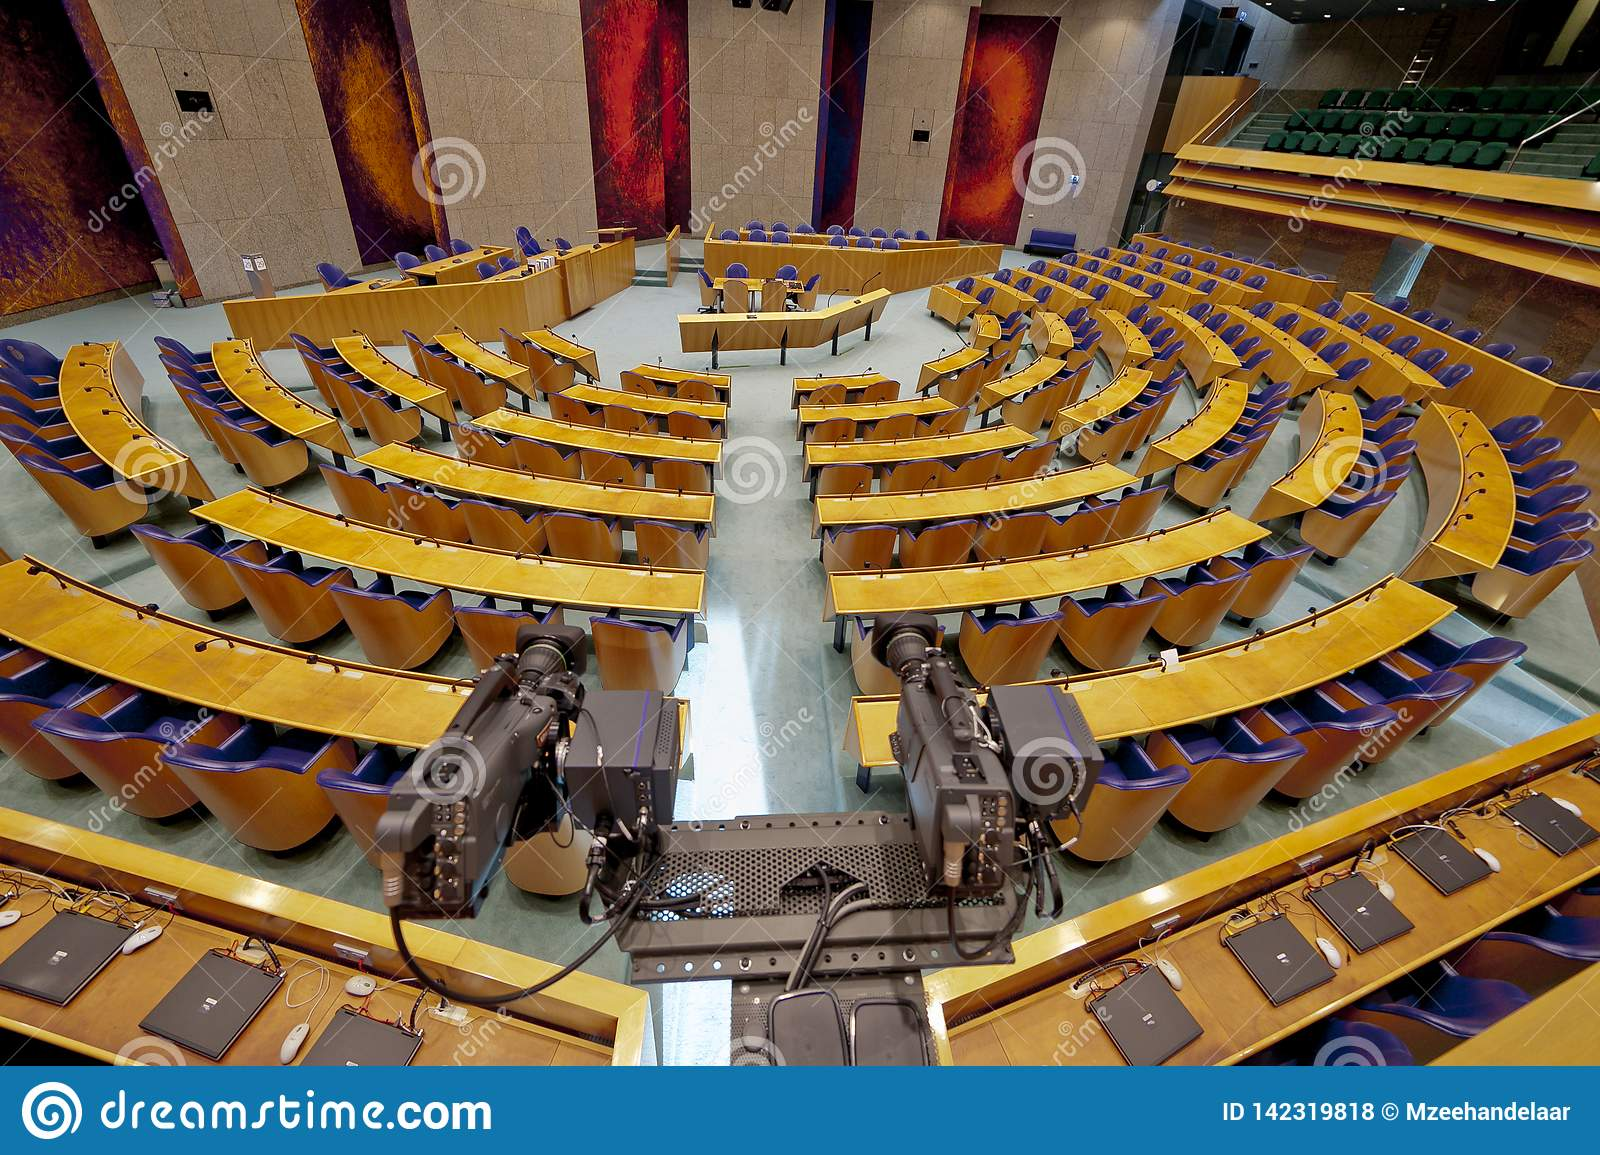 Den Haag, The Netherlands - August 29, 2012: Interior of the empty plenary hall of the House of Representatives